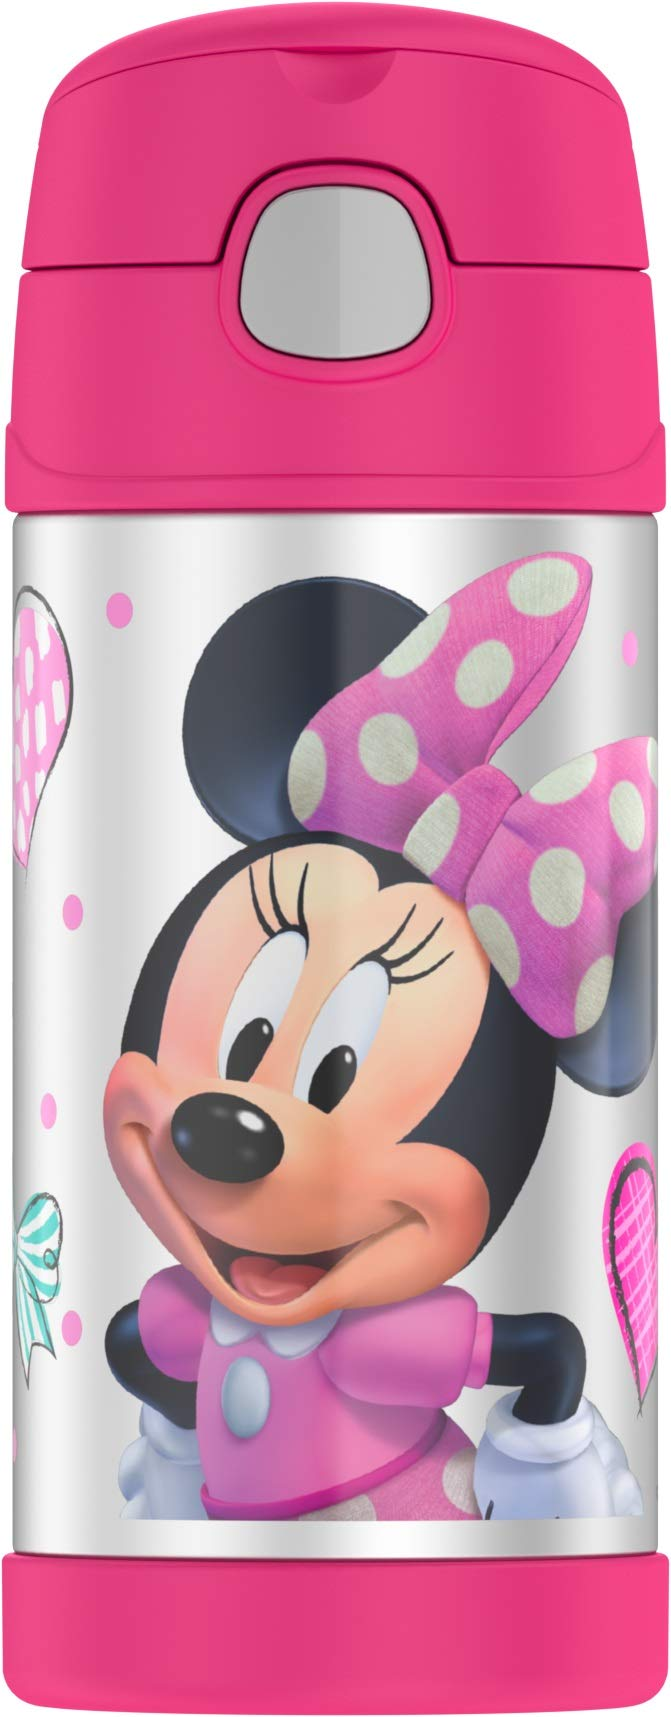 Thermos Funtainer 12 Ounce Bottle, Minnie Mouse by Thermos